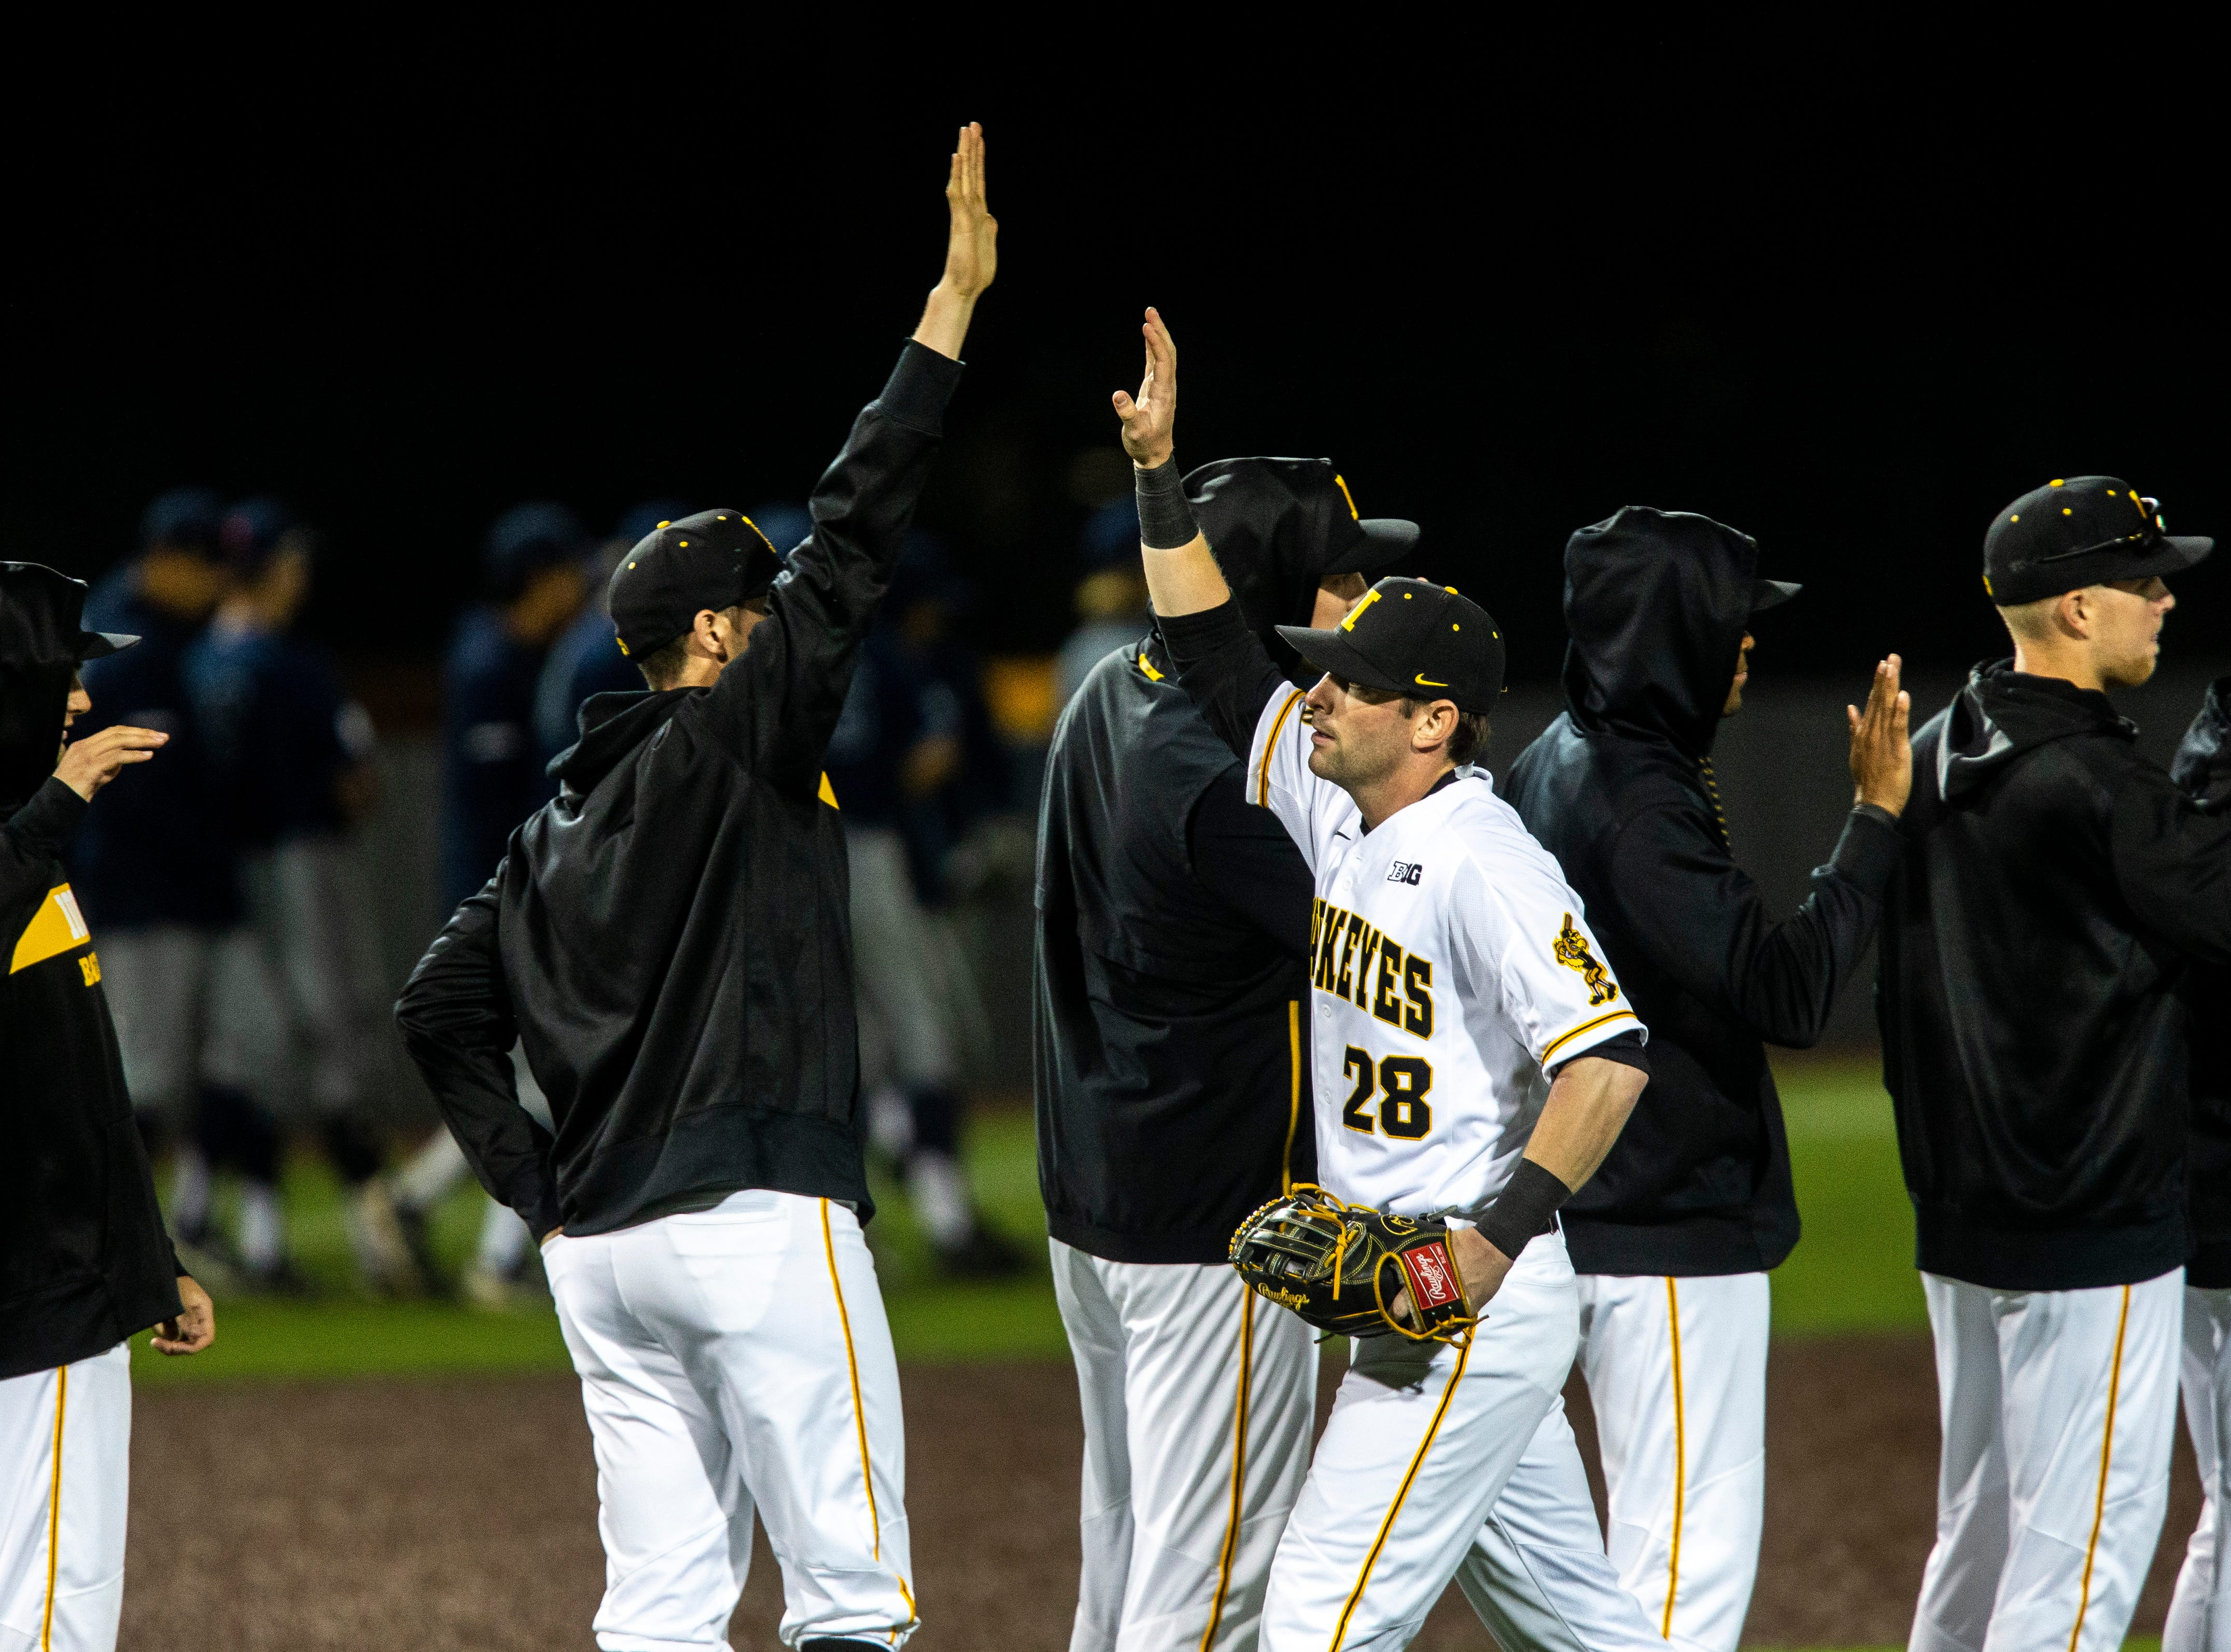 Iowa's Chris Whelan (28) high-fives teammates after NCAA non conference baseball game, Friday, May 3, 2019, at Duane Banks Field in Iowa City, Iowa.